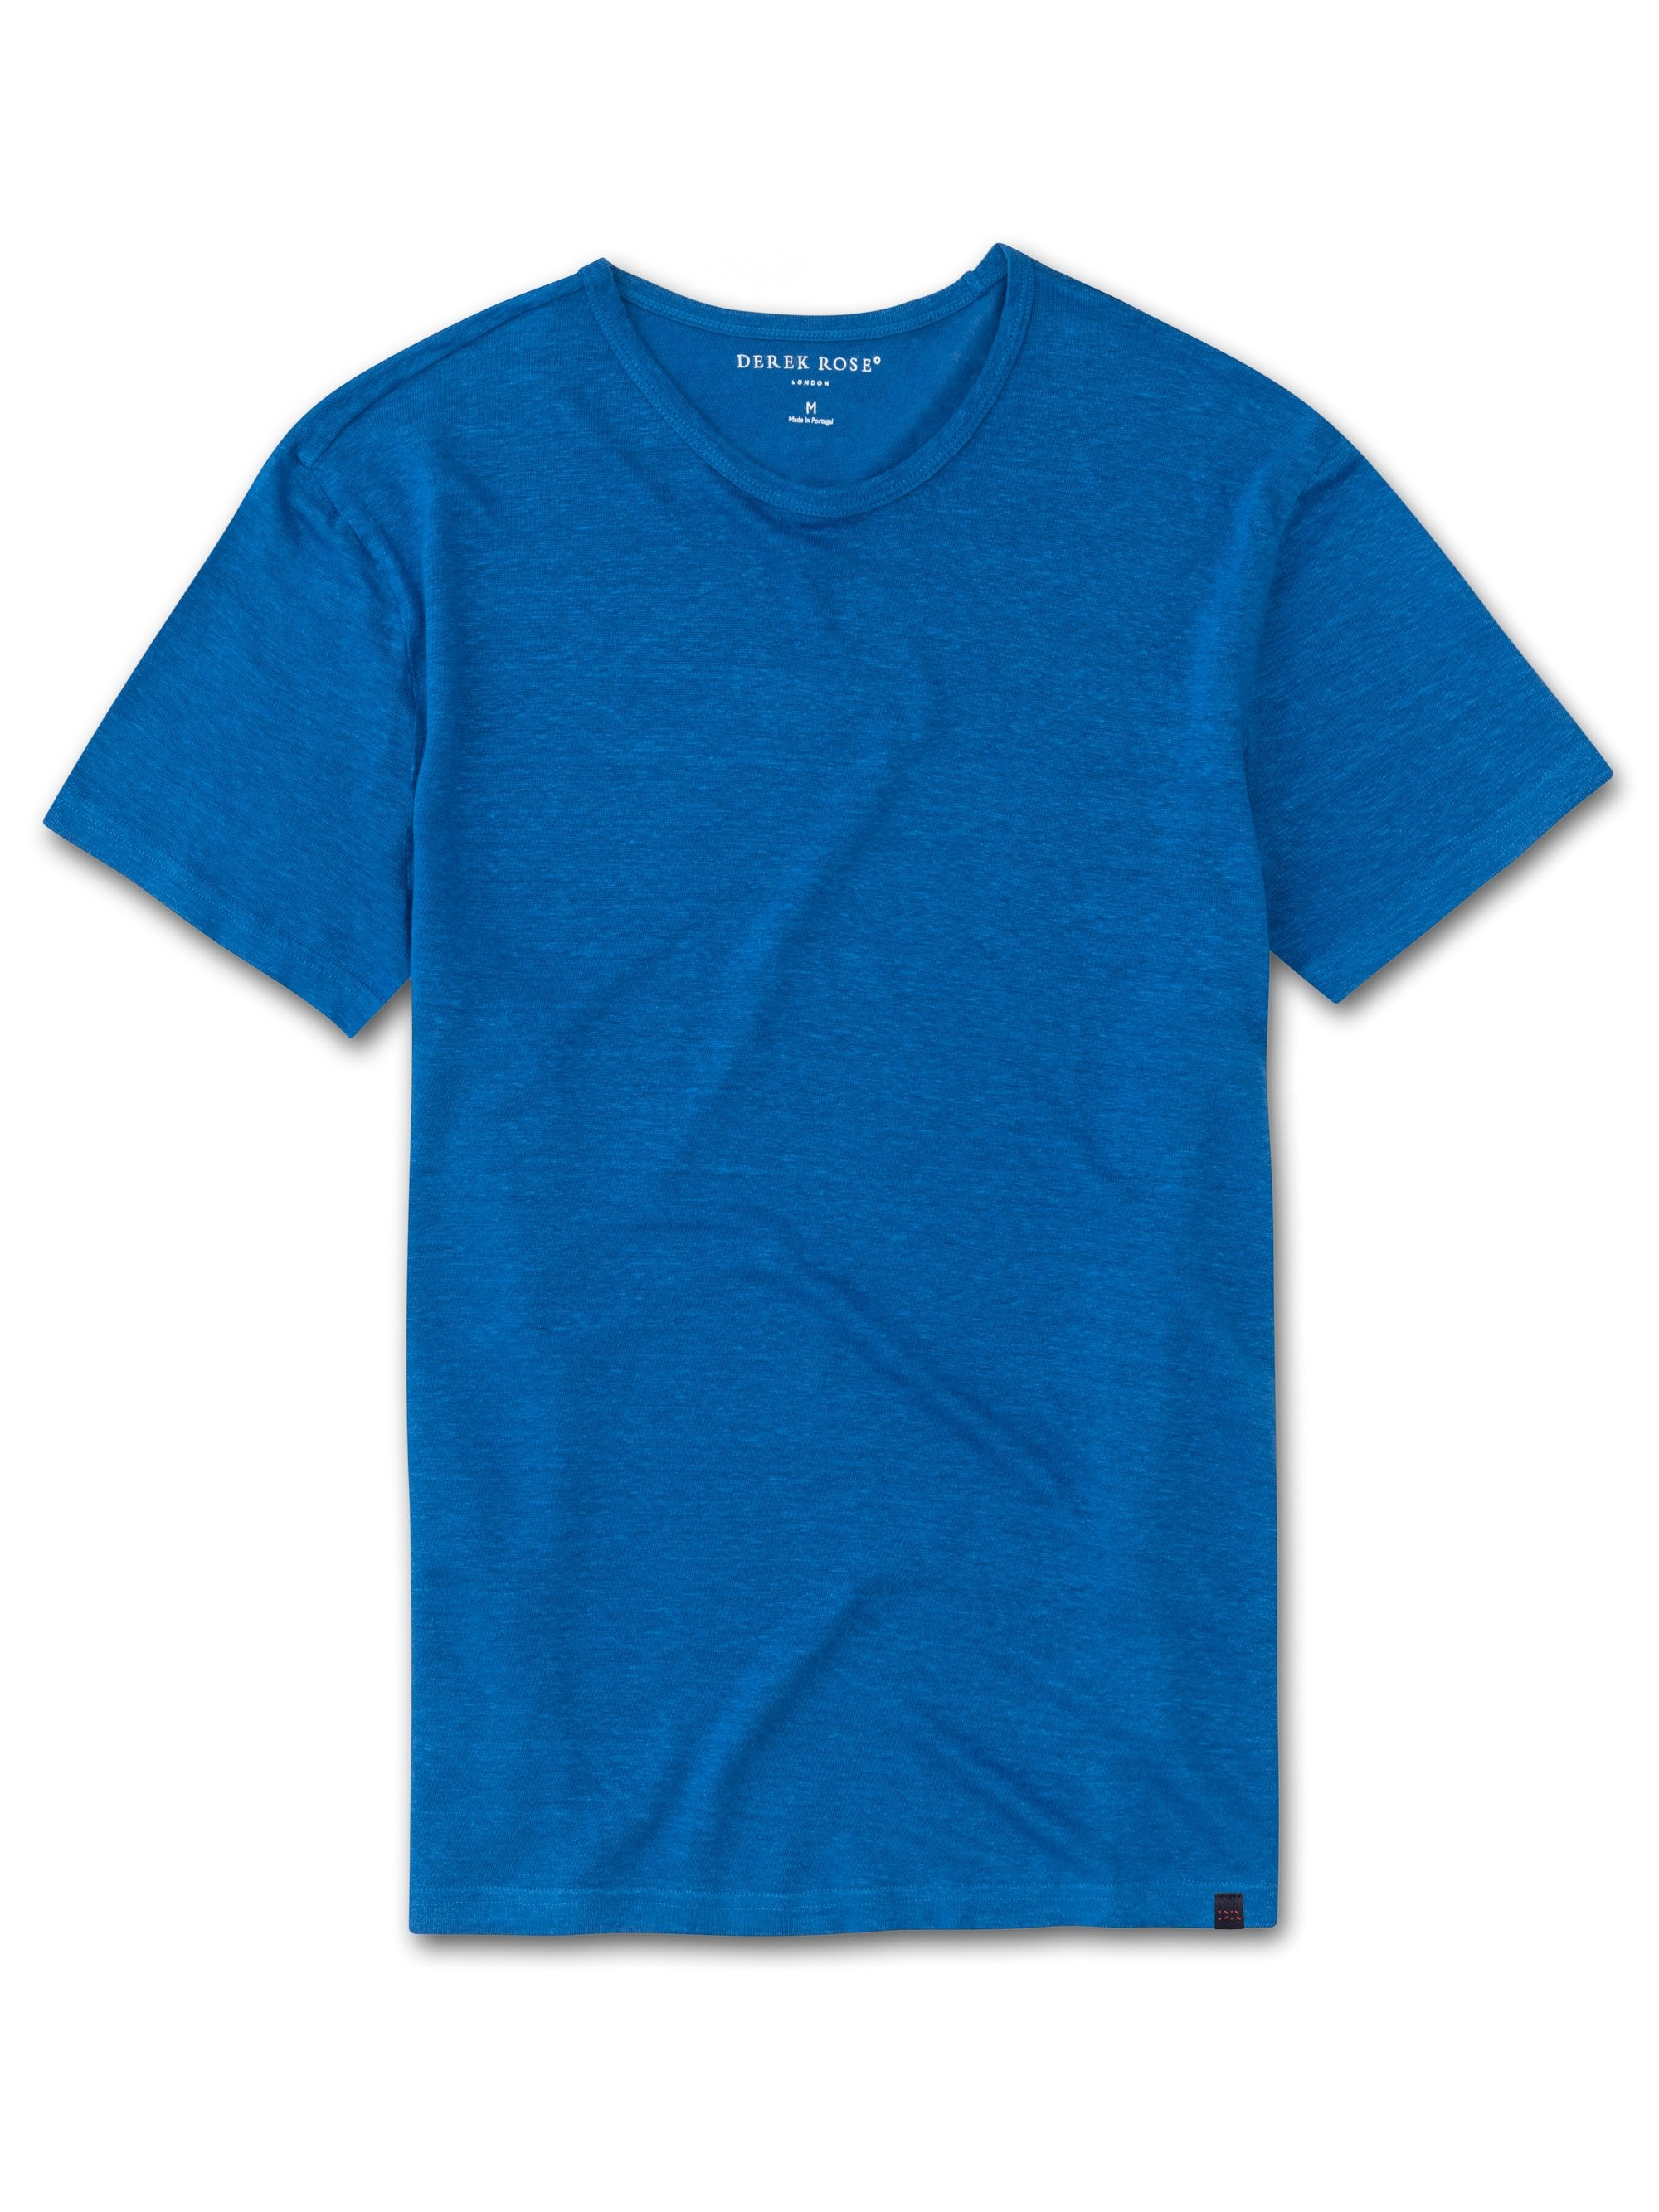 Men's Linen Short Sleeve T-Shirt Jordan Pure Linen Blue